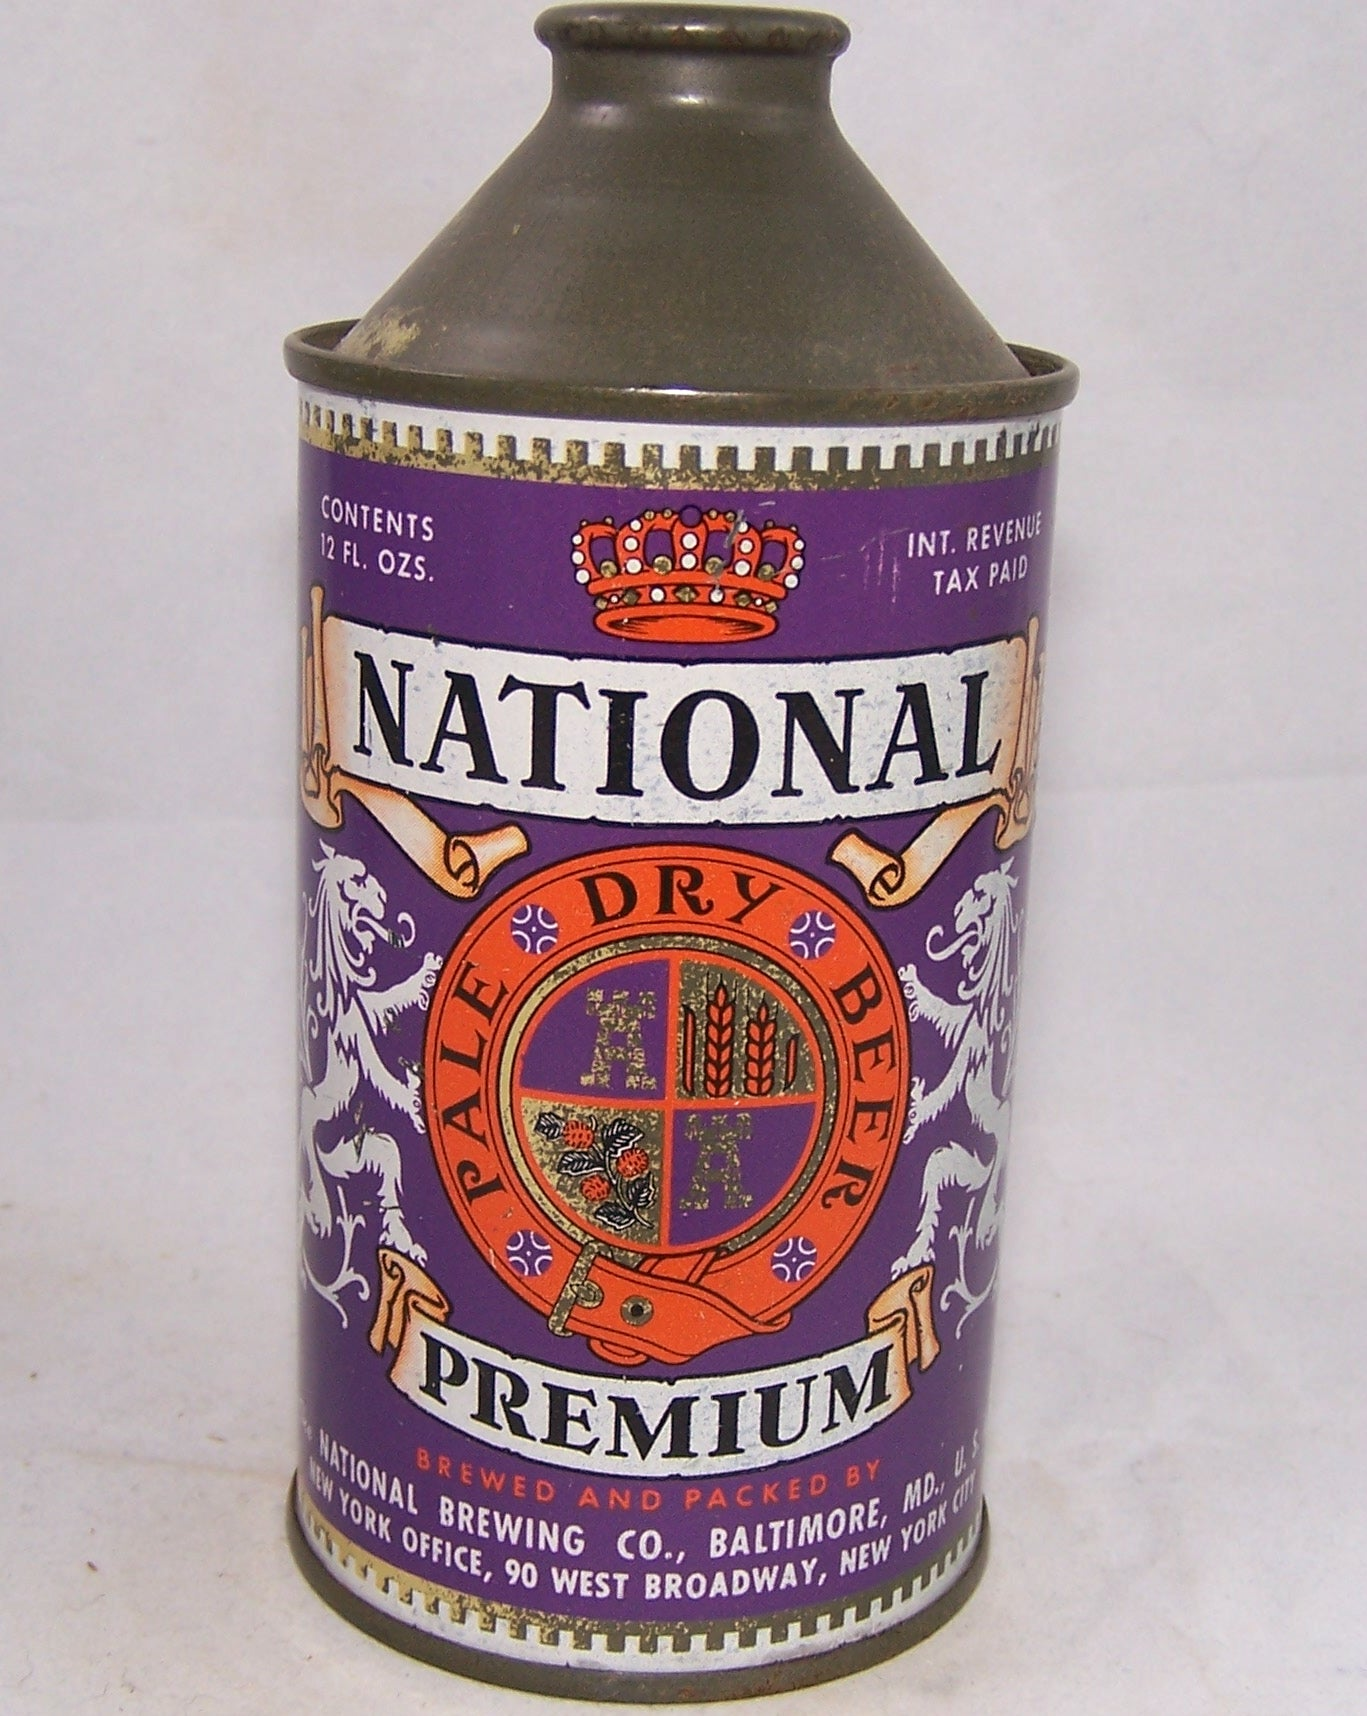 National Premium Pale Dry Beer, USBC 175-01, Grade 1/1- Sold on 10/23/17